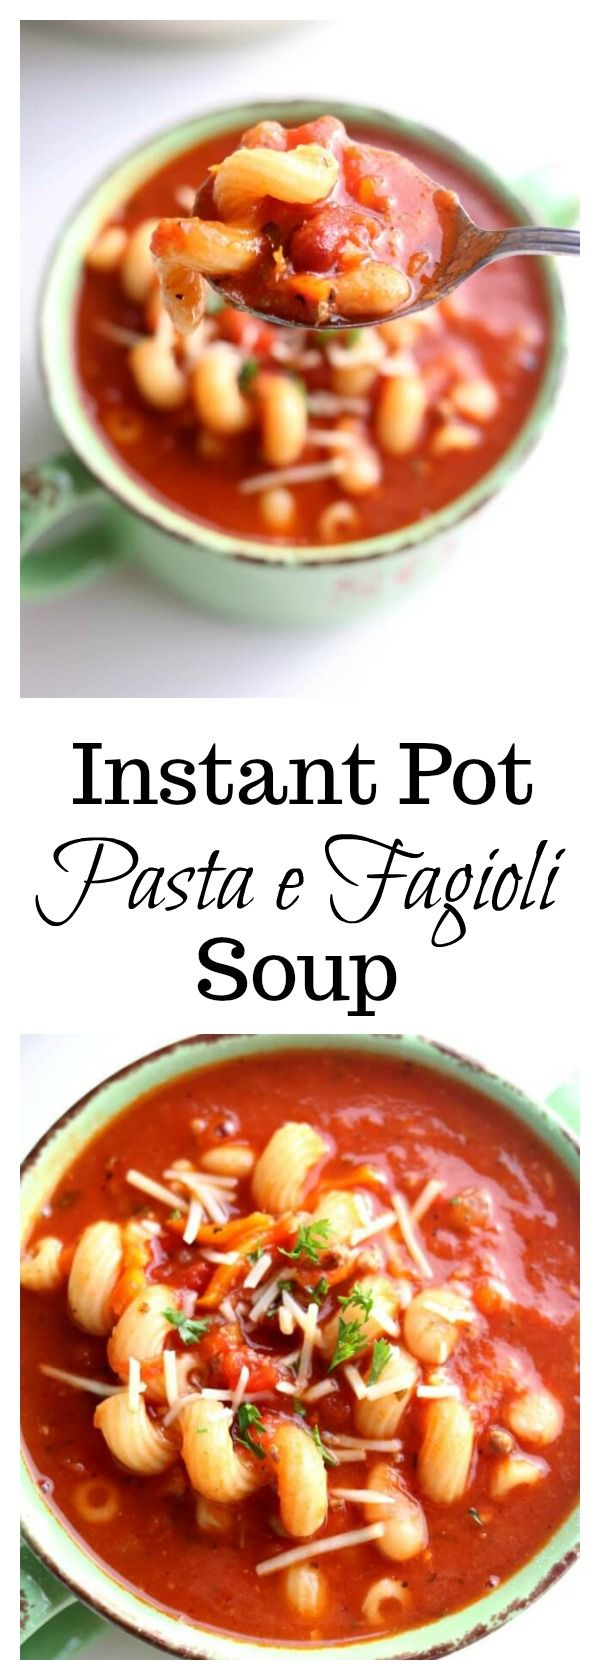 Instant Pot Pasta e Fagioli Soup–your favorite soup from Olive Garden made quickly at home in your pressure cooker. White and red beans, ground beef,  tomatoes and pasta in a savory broth.